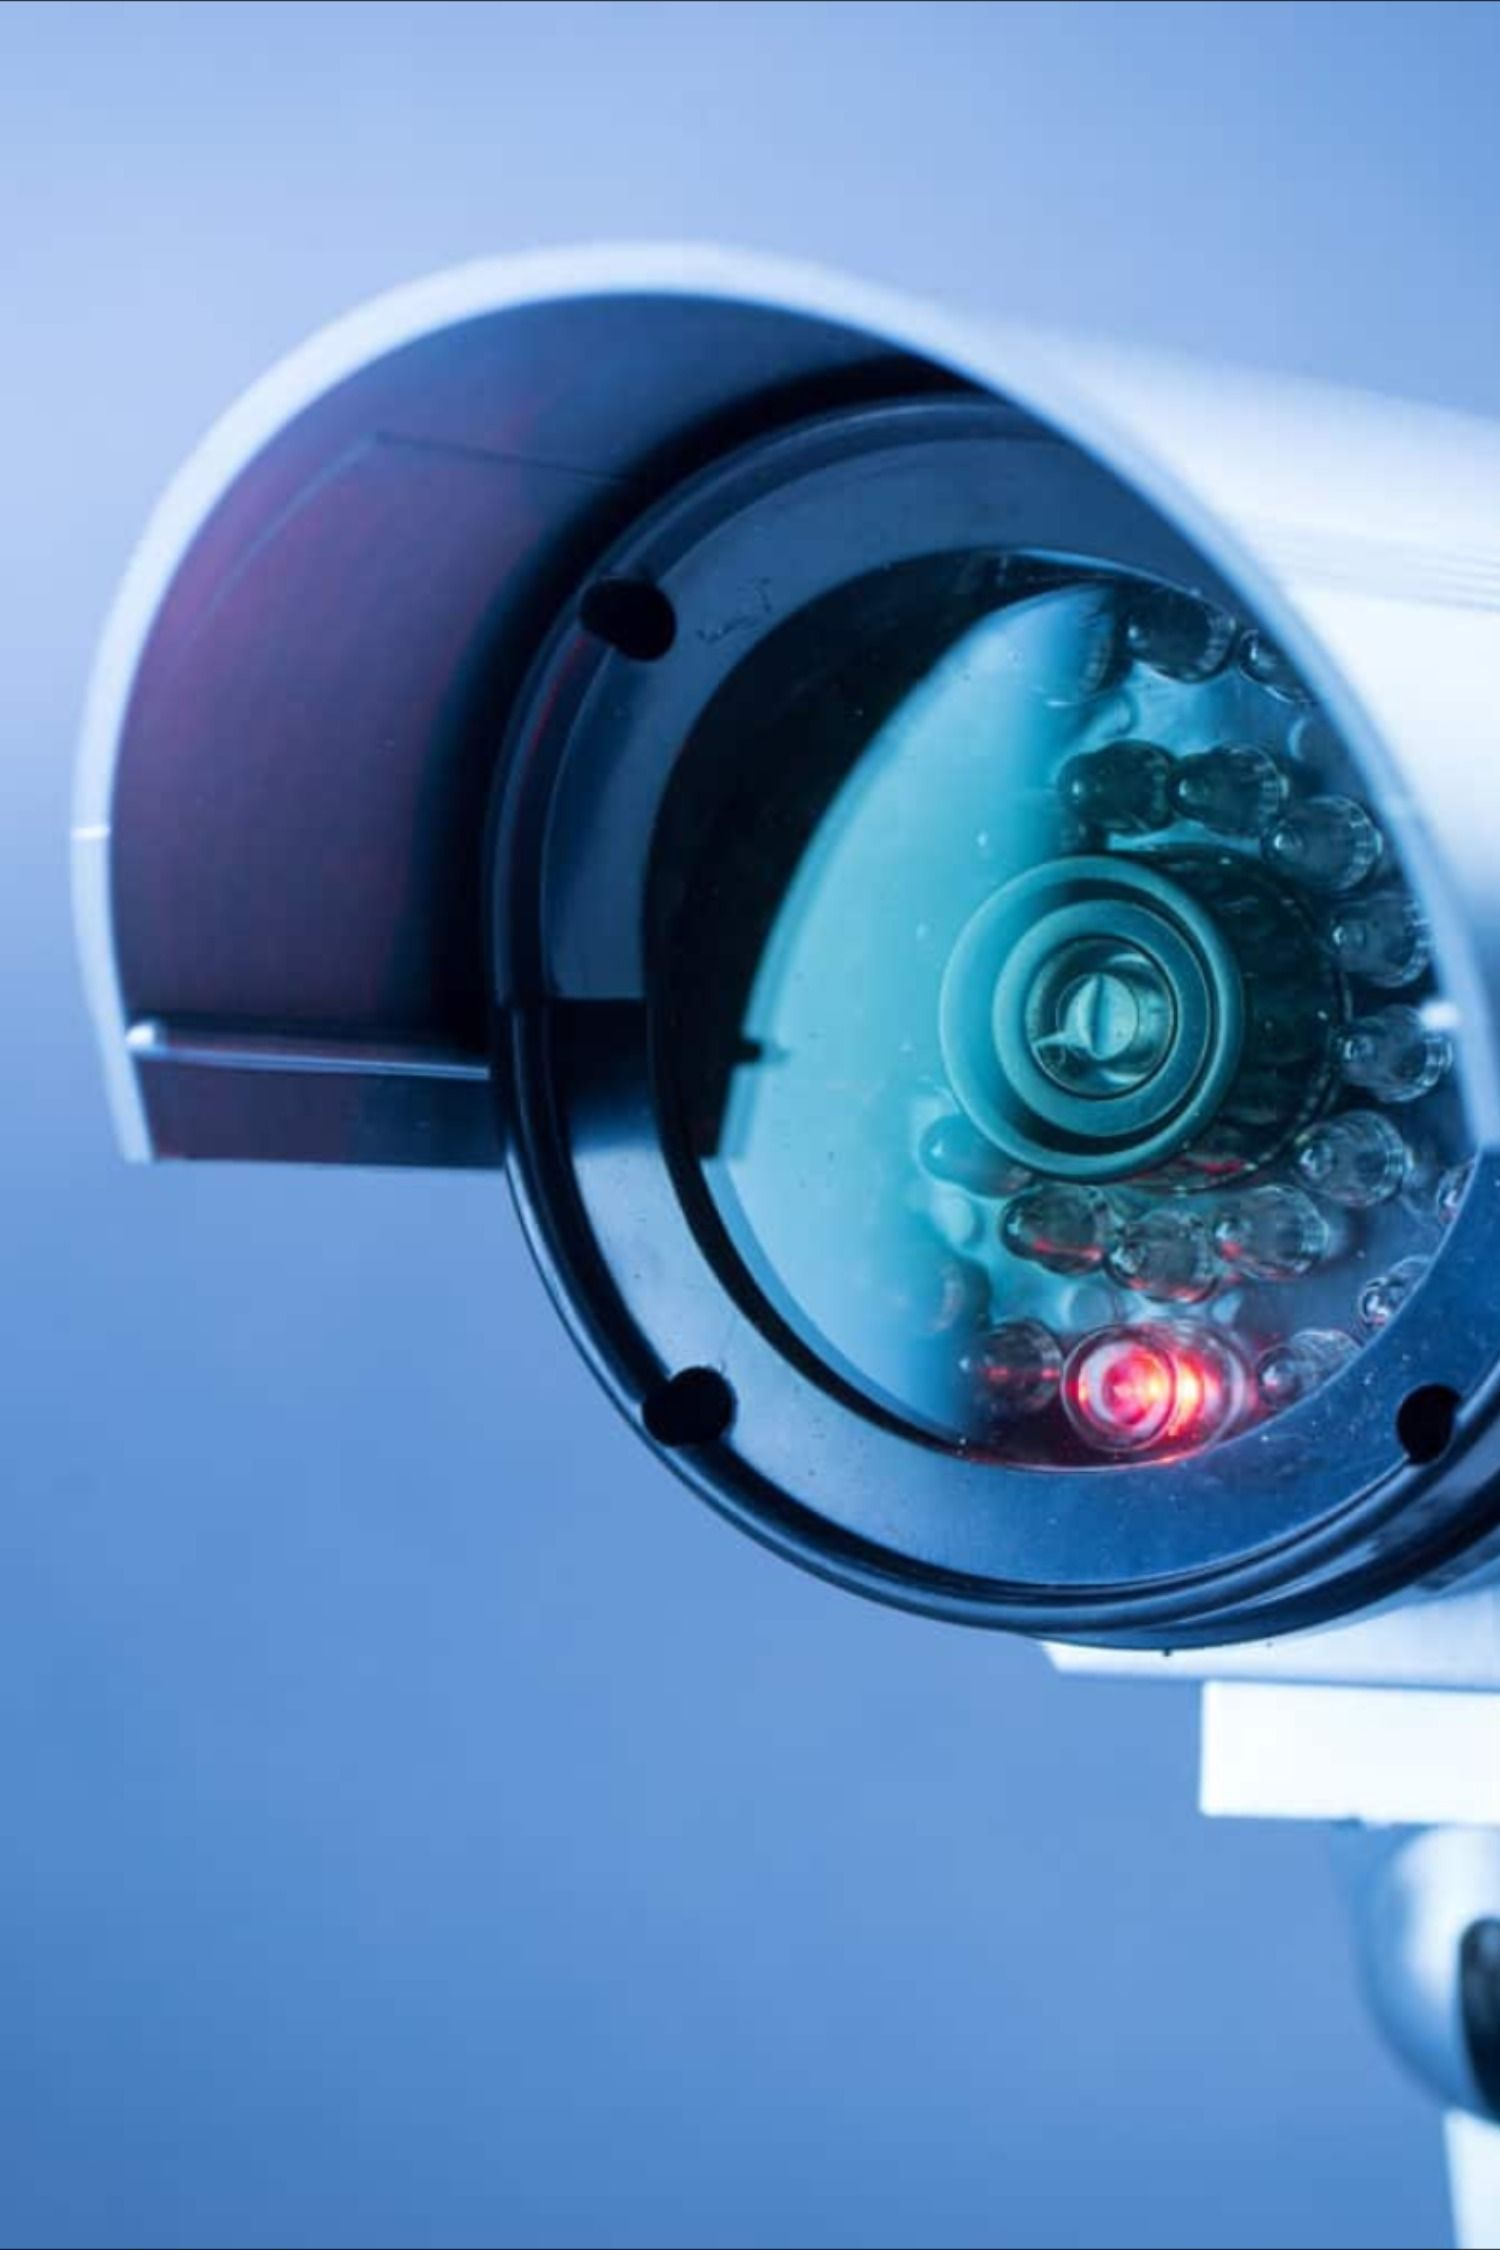 Amazon Engineer Calls For Ring To Be Shut Down Immediately Over Privacy Concerns Security Cameras For Home Best Security Cameras Security Camera